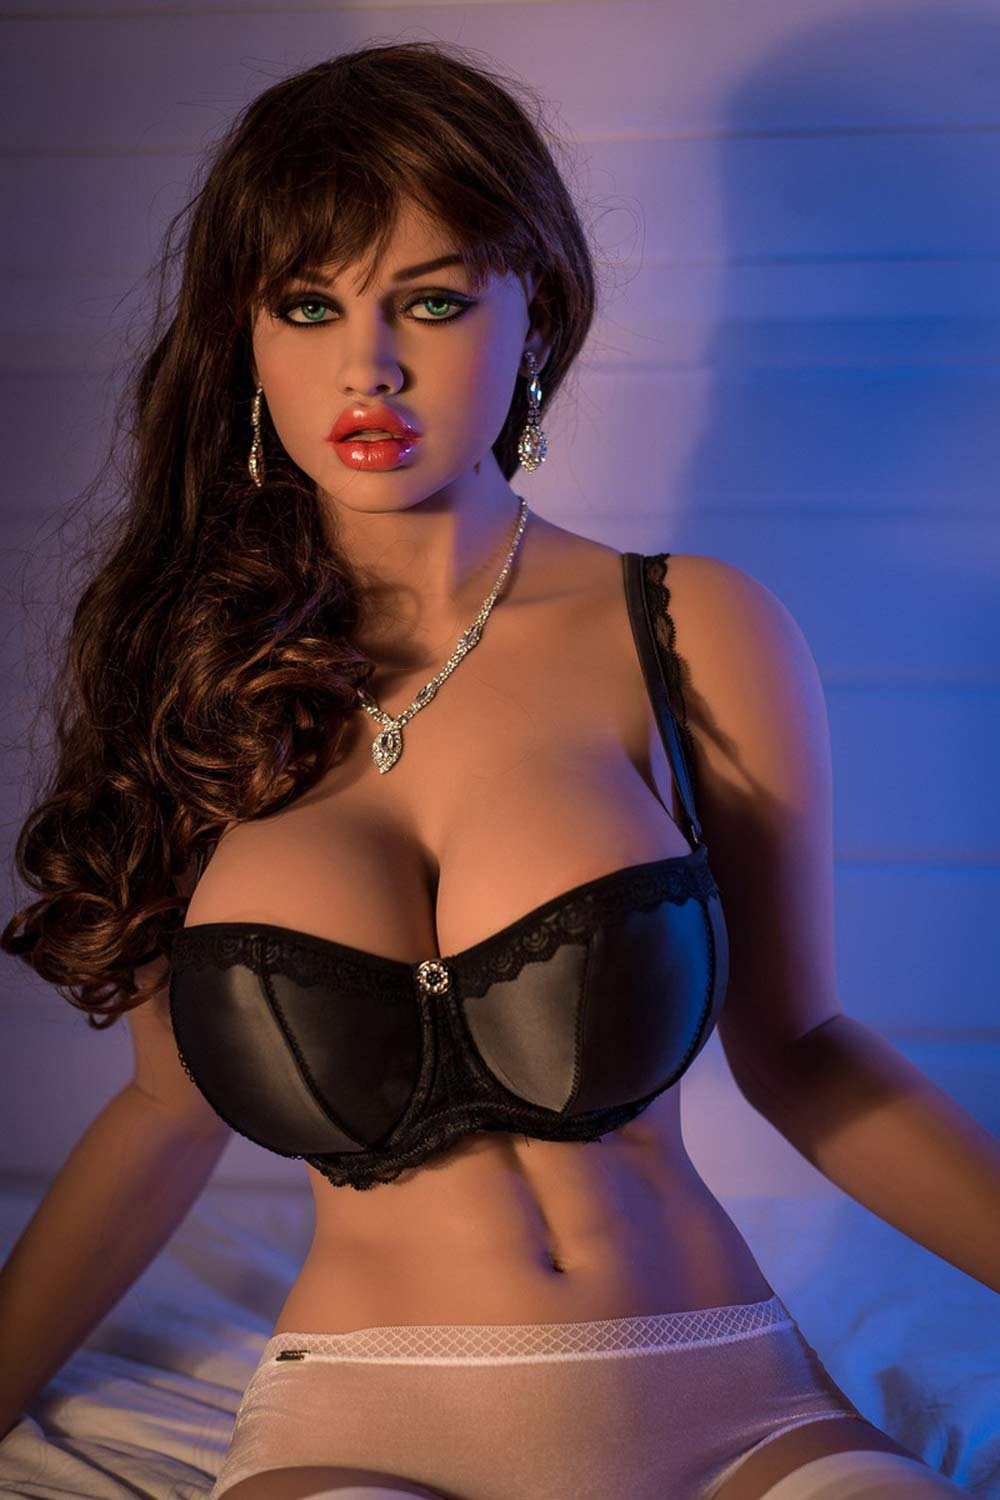 Big breasted sex doll in black bra